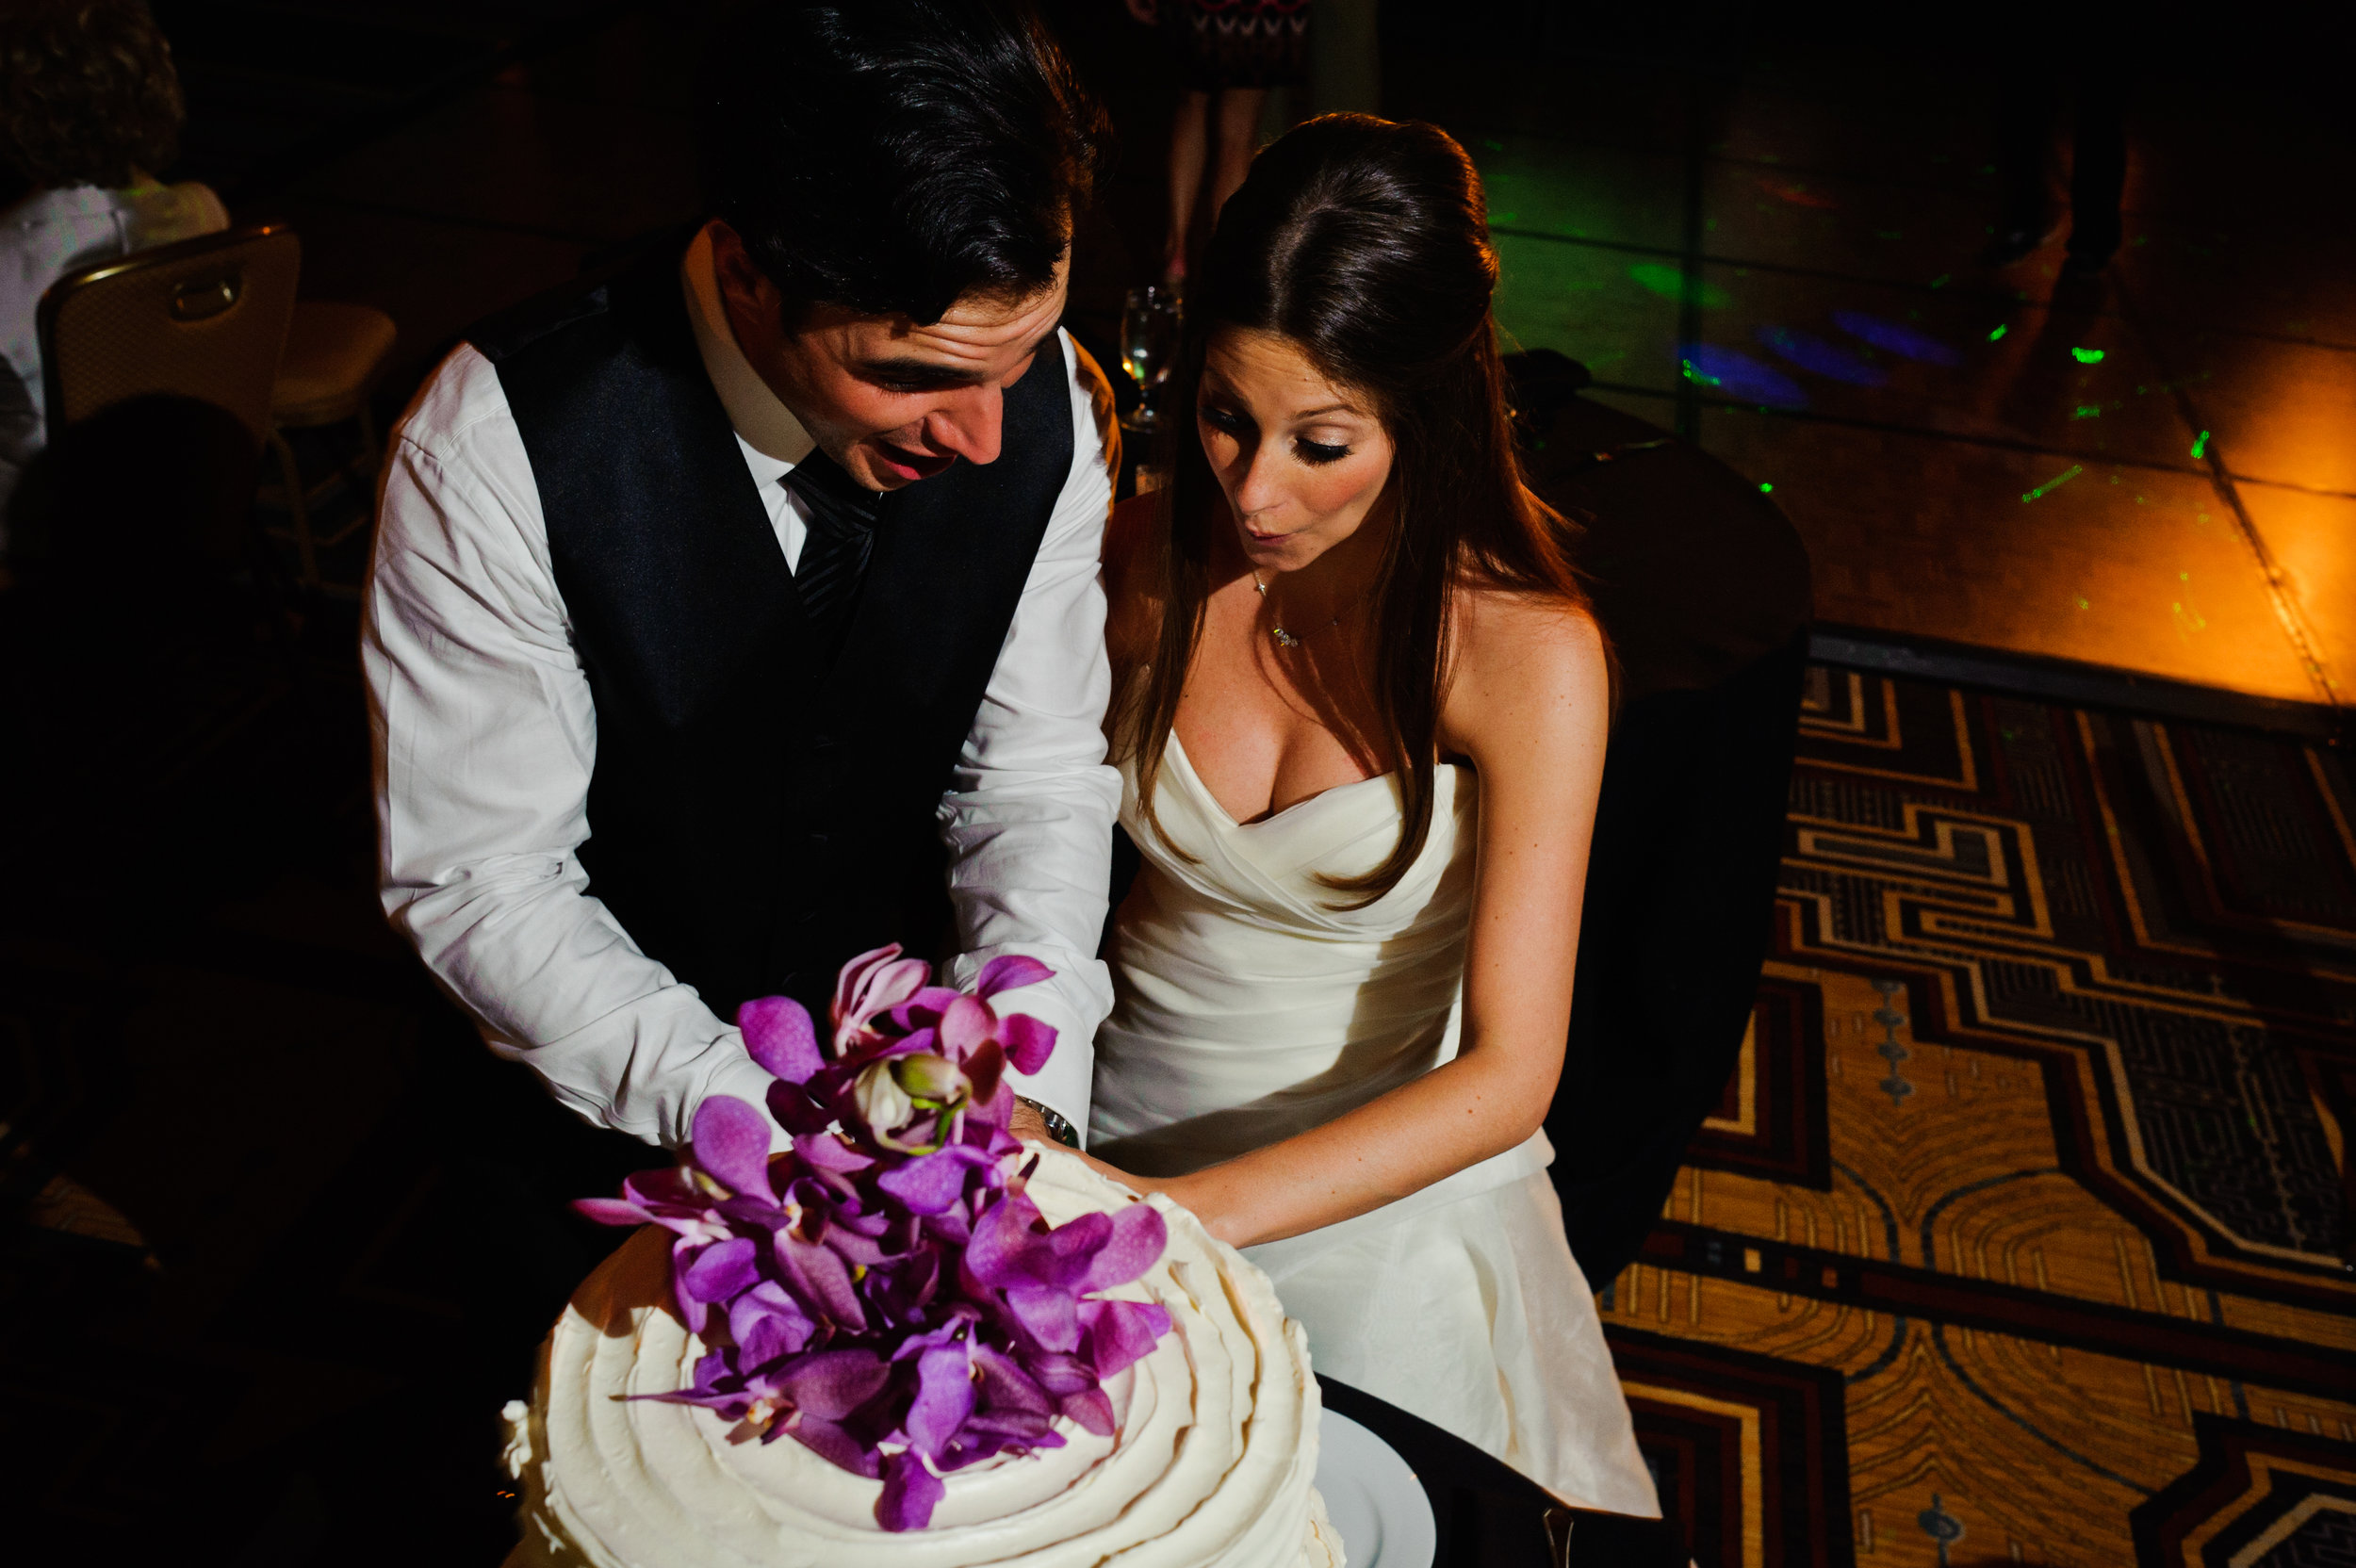 38 bride and groom cutting cake cake cutting at reception candid bride and groom photos Sergio Photography Life Design Events.JPG